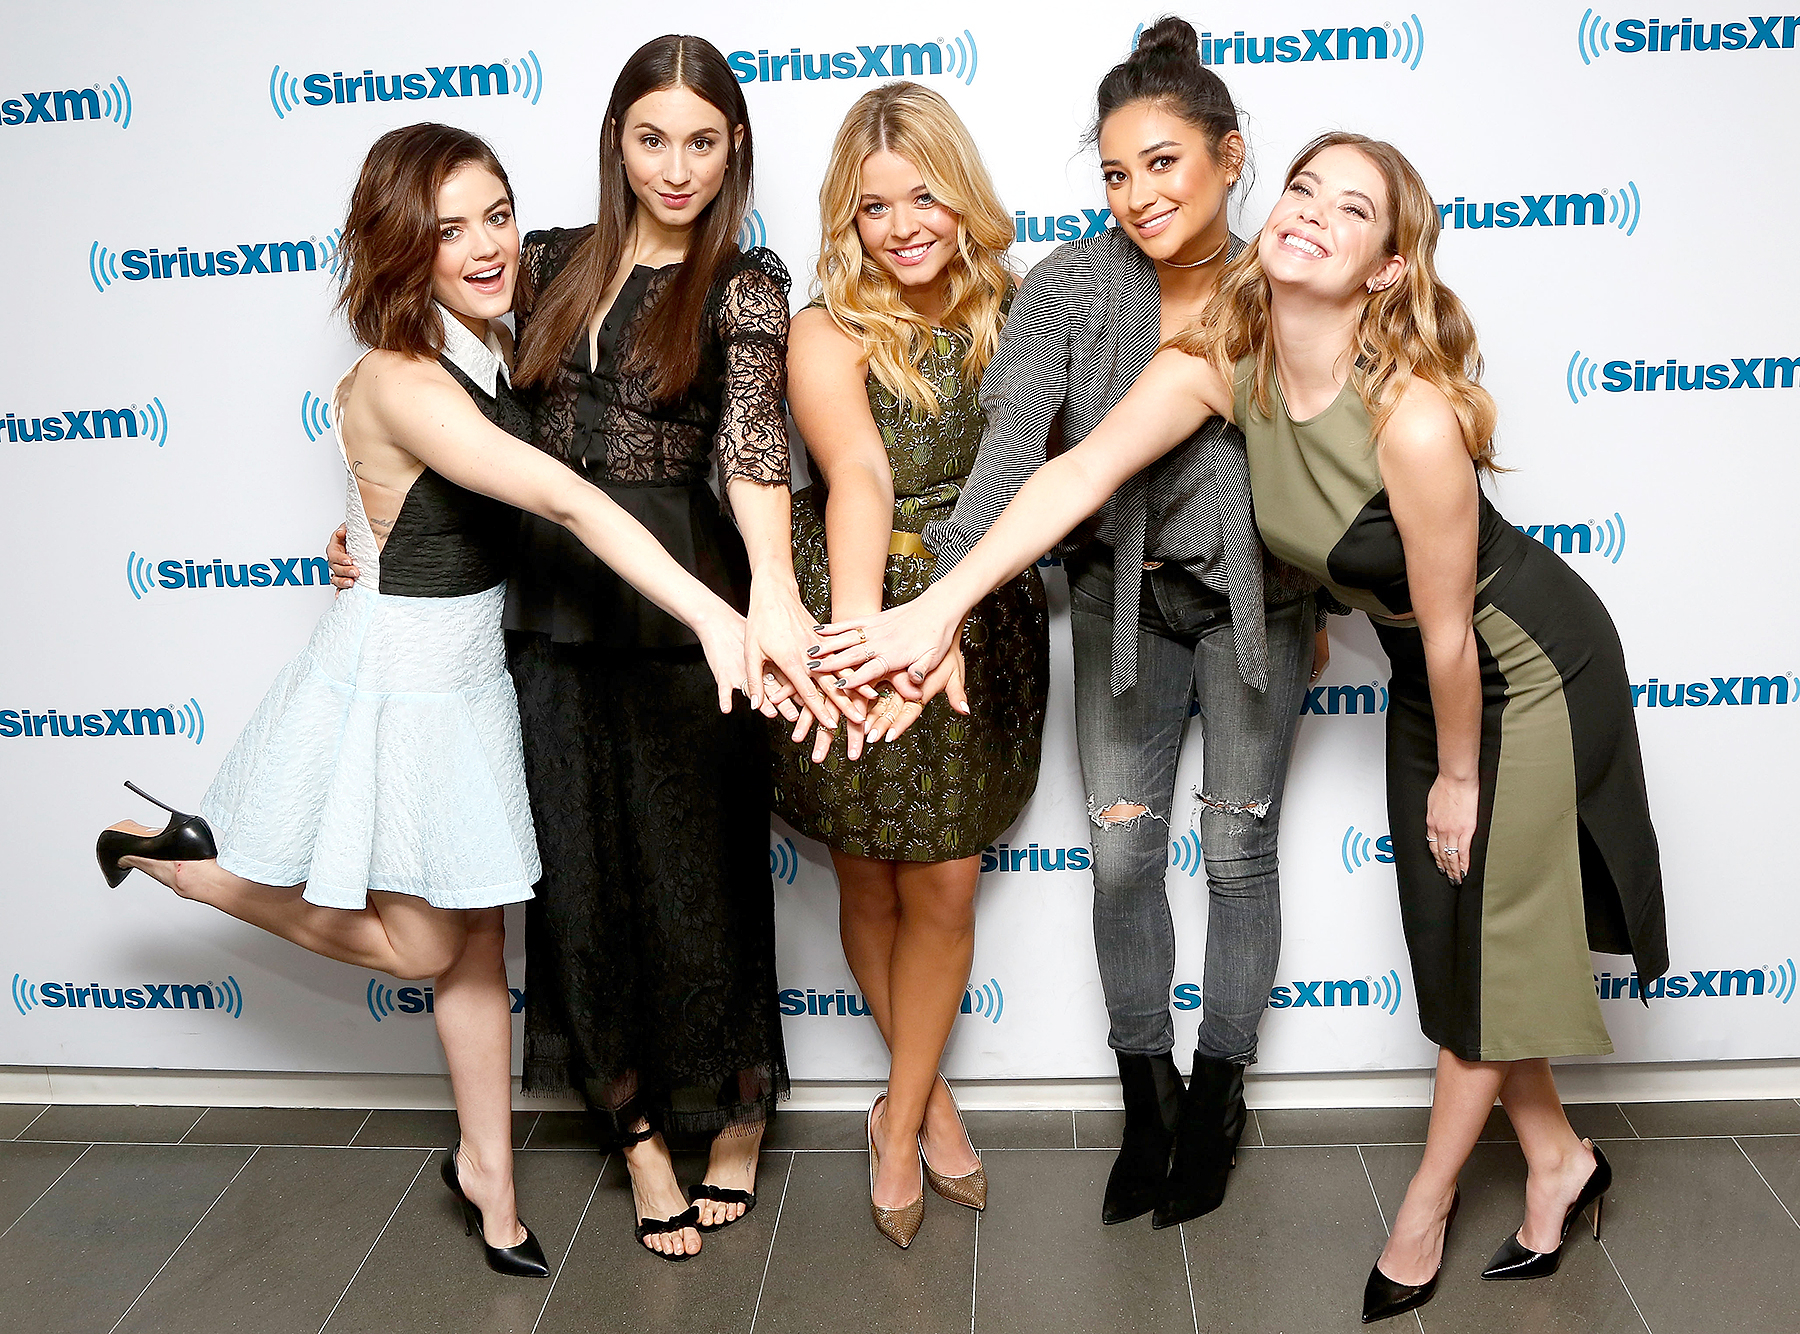 "Lucy Hale, Troian Bellisario, Sasha Pieterse, Shay Mitchell, and Ashley Benson of ""Pretty Little Liars"" visit SiriusXM Studios on January 11, 2016 in New York City."